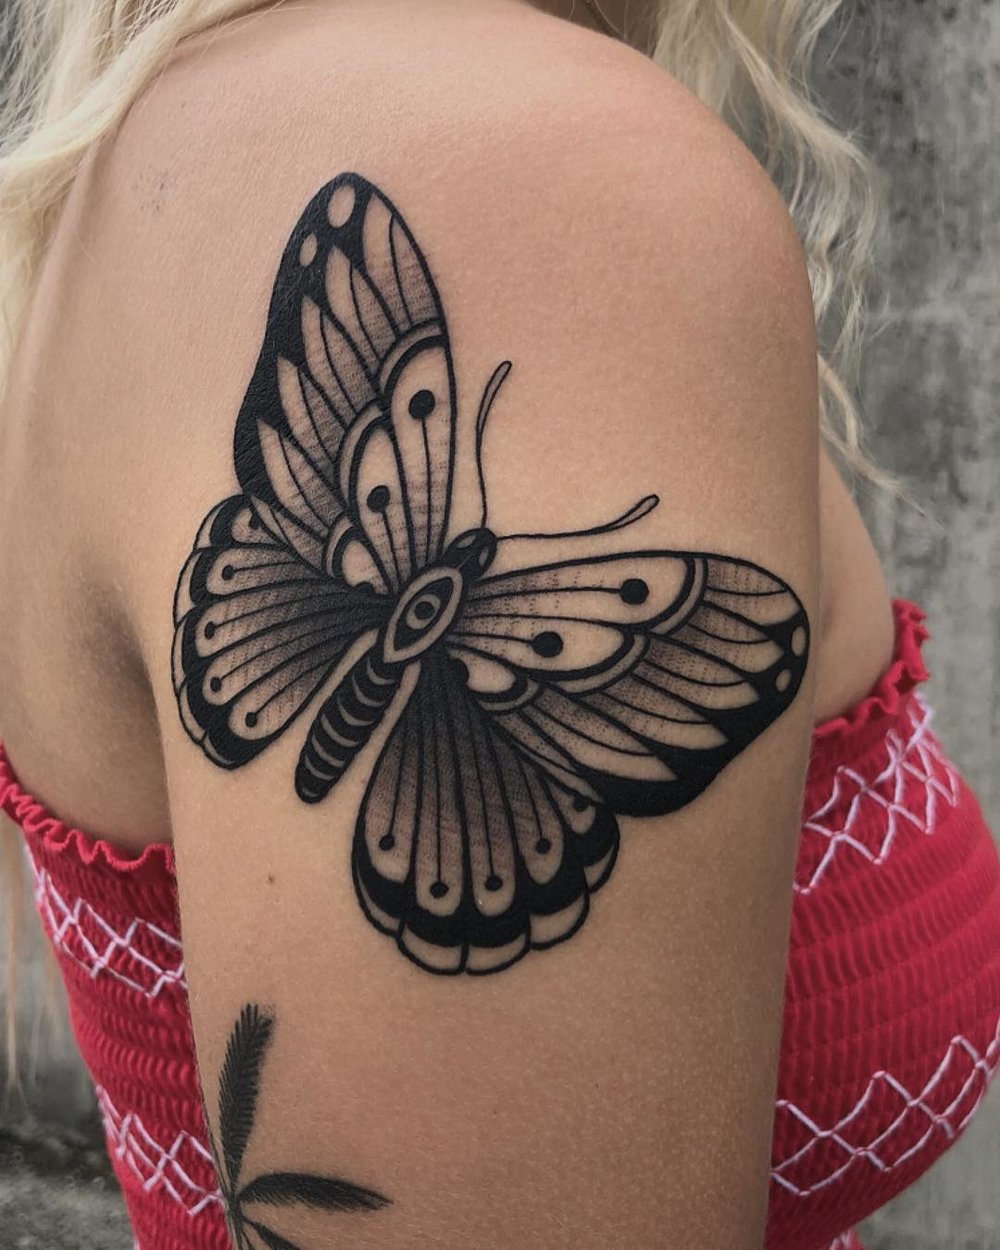 cody-philpott-butterfly-tattoo-kelowna-blacktattoo.jpg